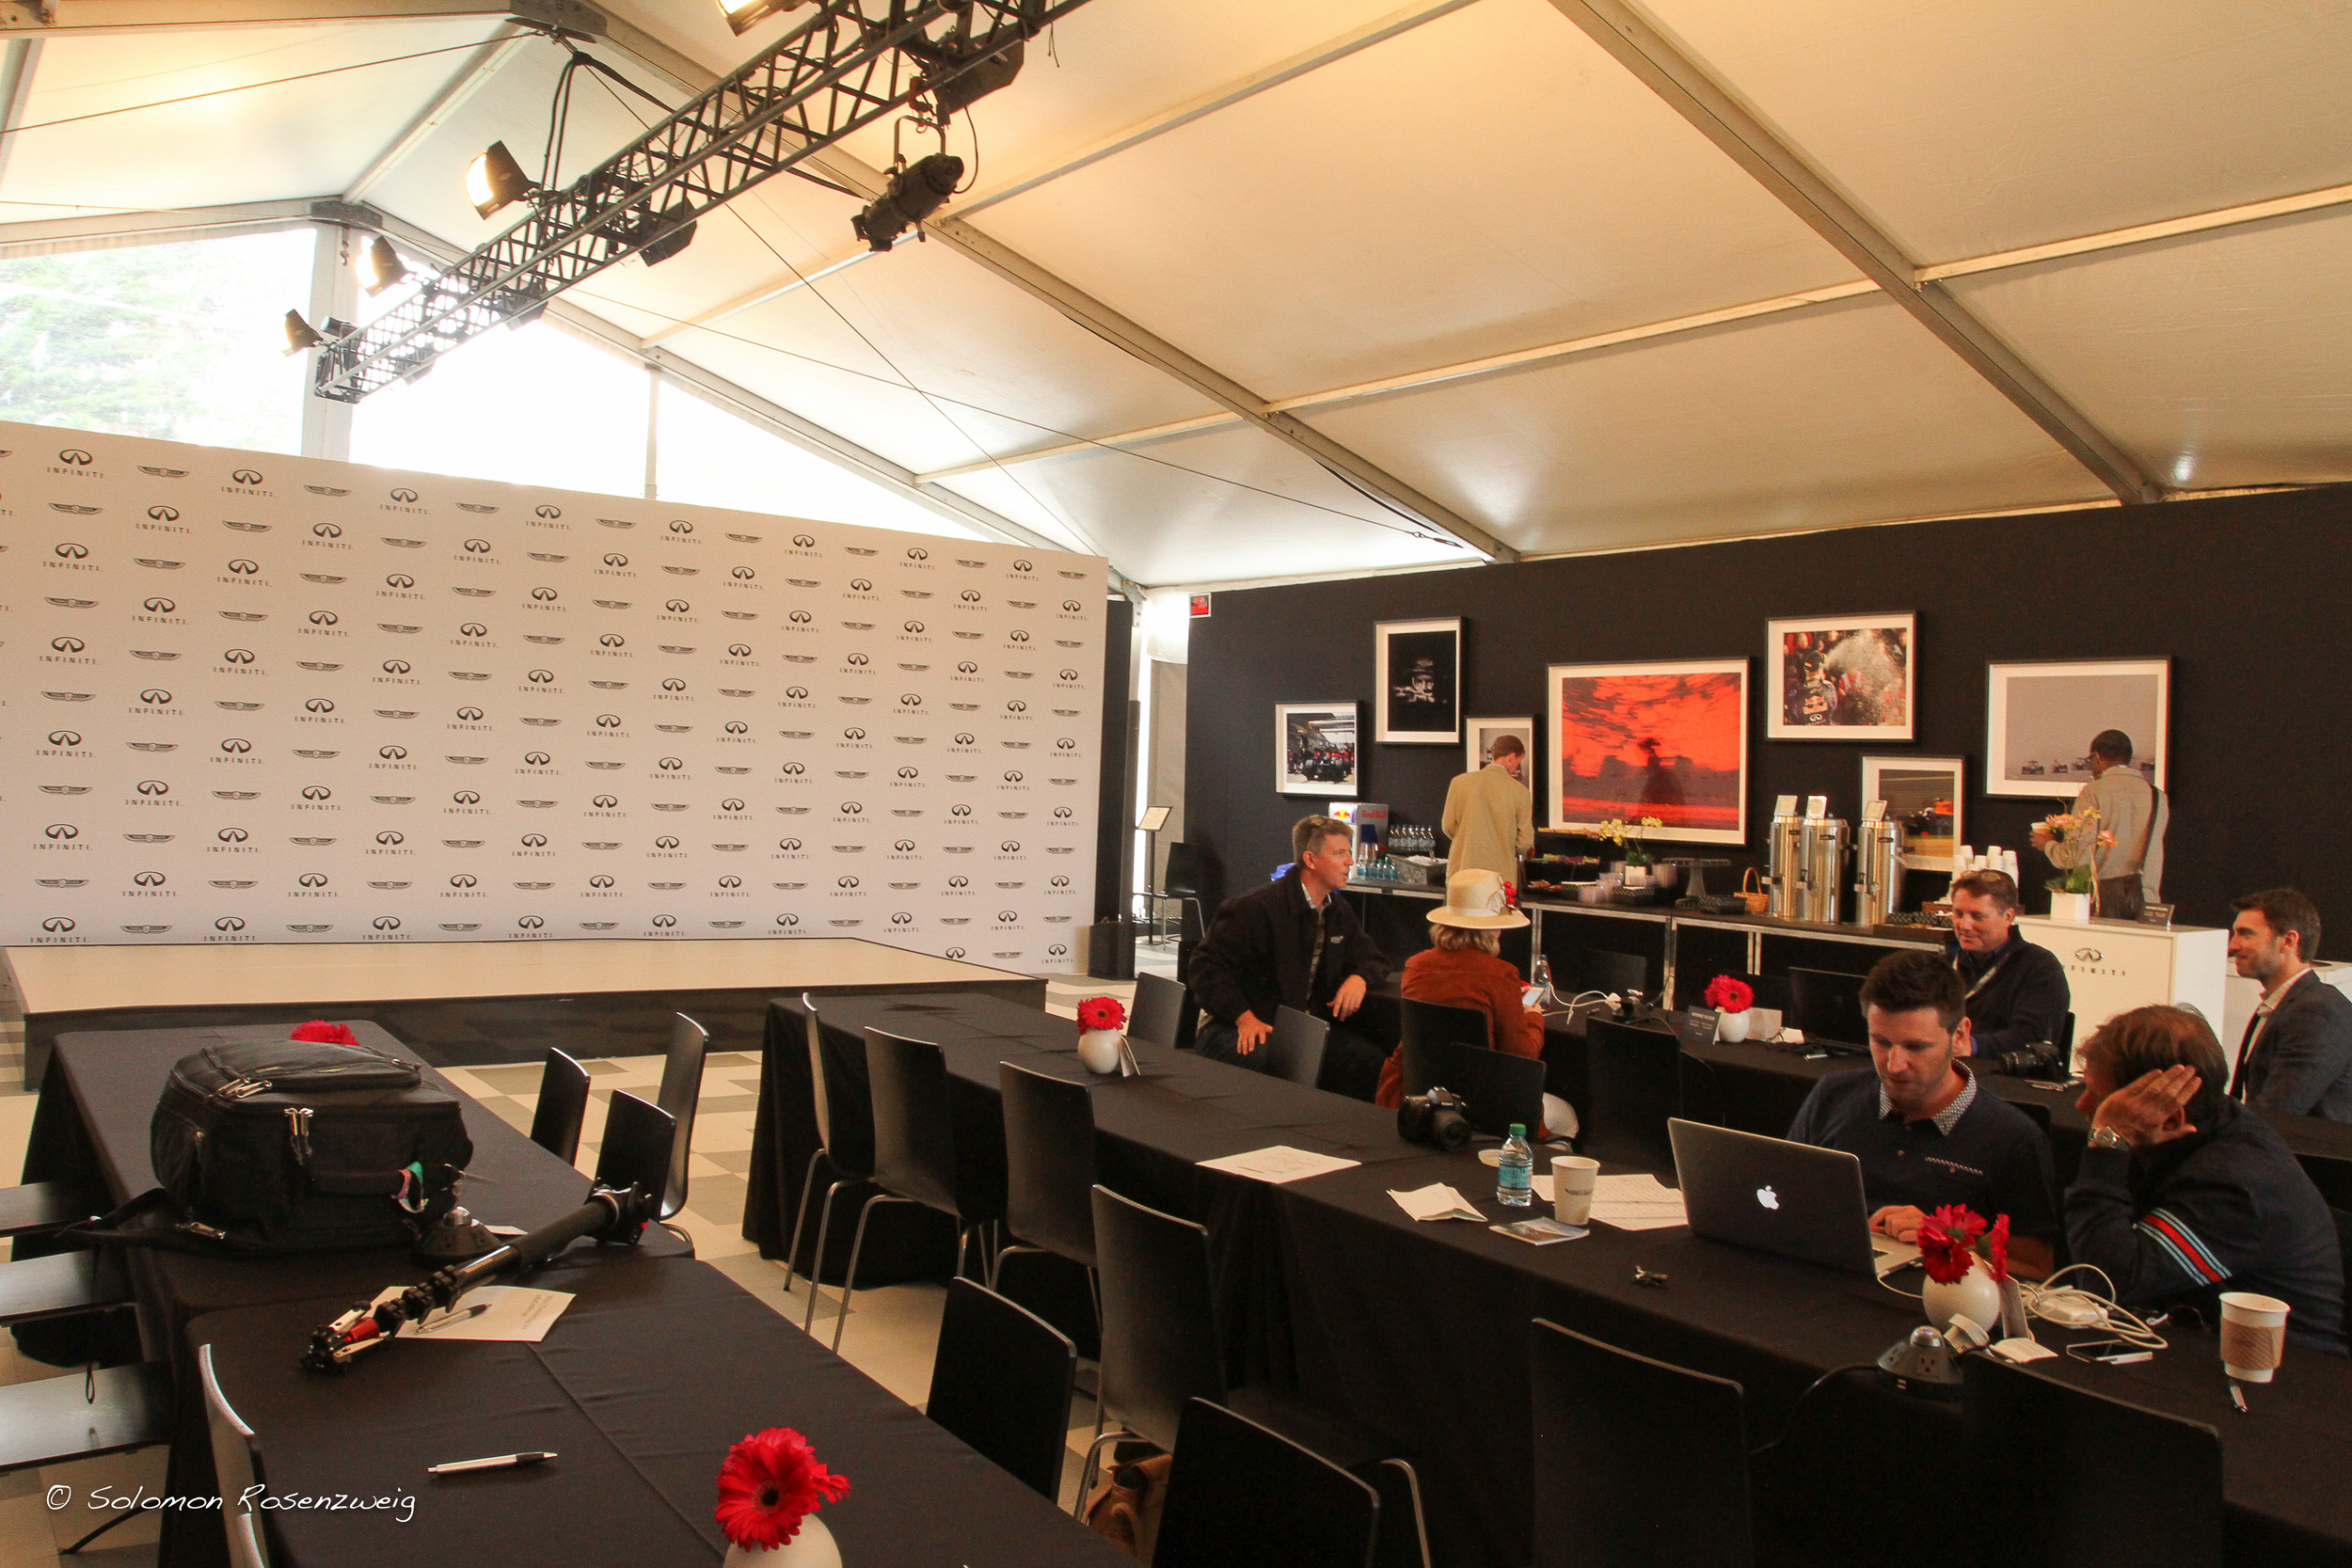 The press working room.